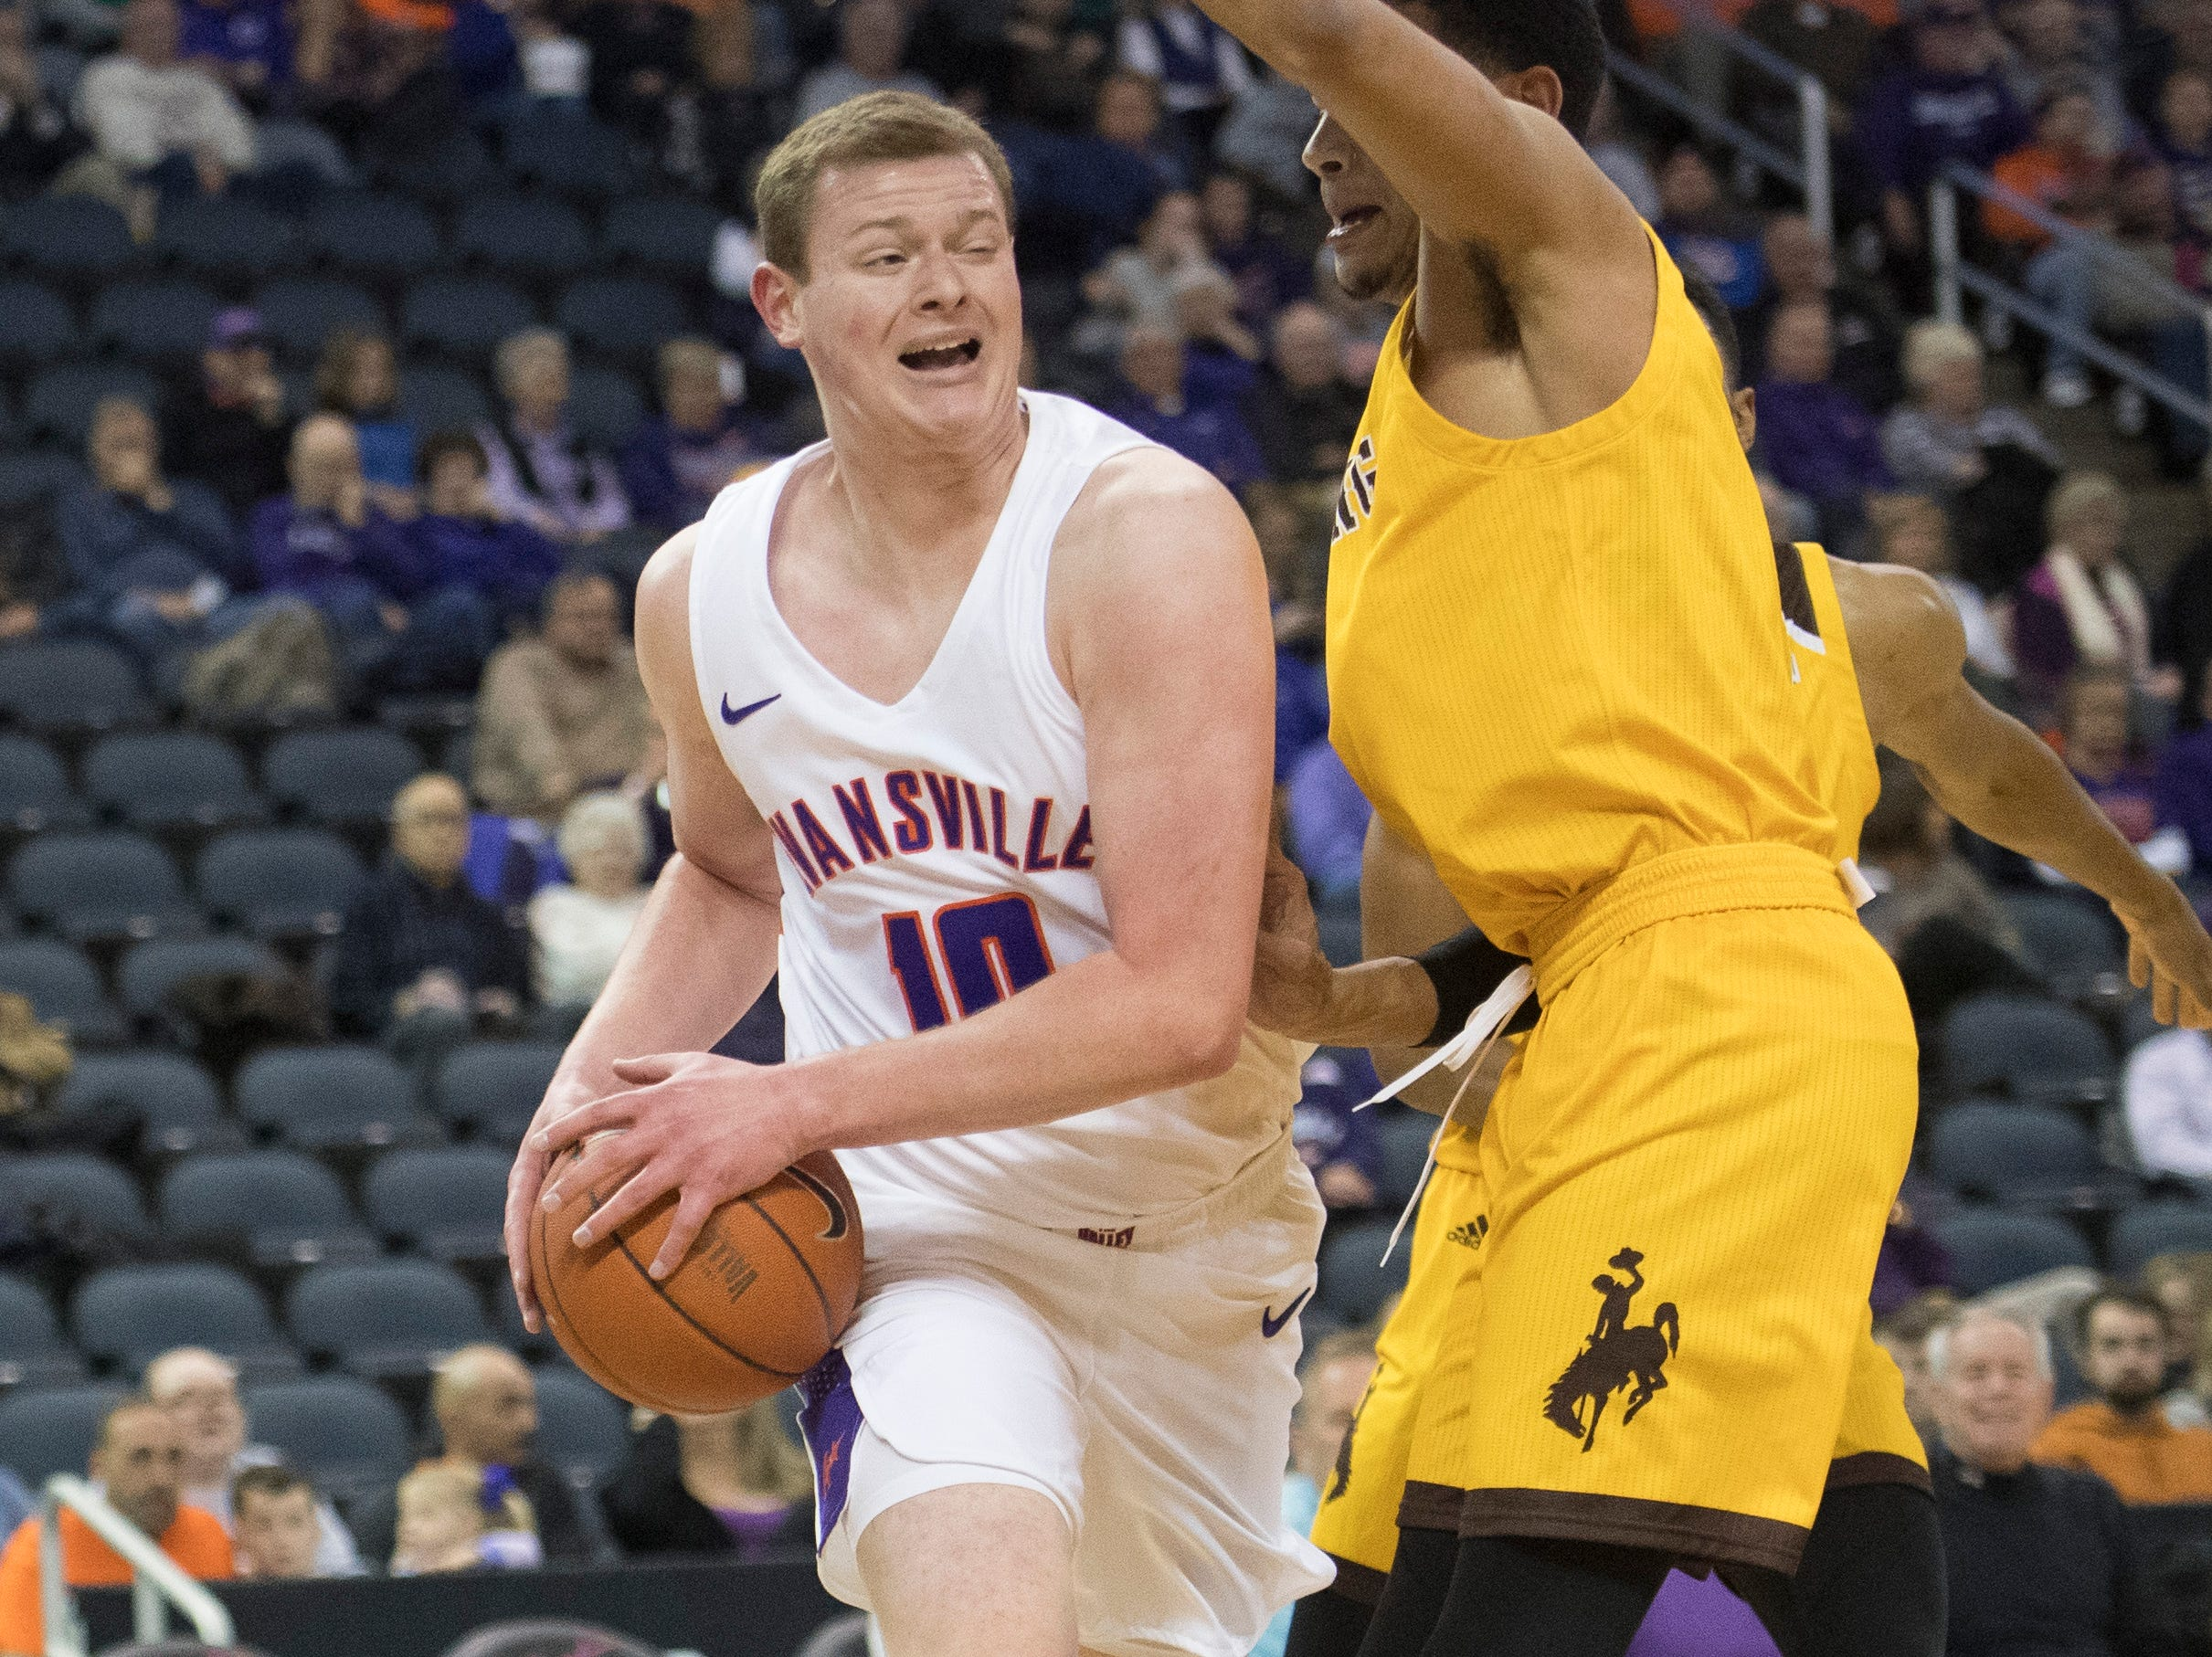 Wyoming defense tries to force UE's Evan Kuhlman (10) out of bounds during the UE vs Wyoming game at the Ford Center Wednesday, Nov. 28, 2018. UE won 86-76.